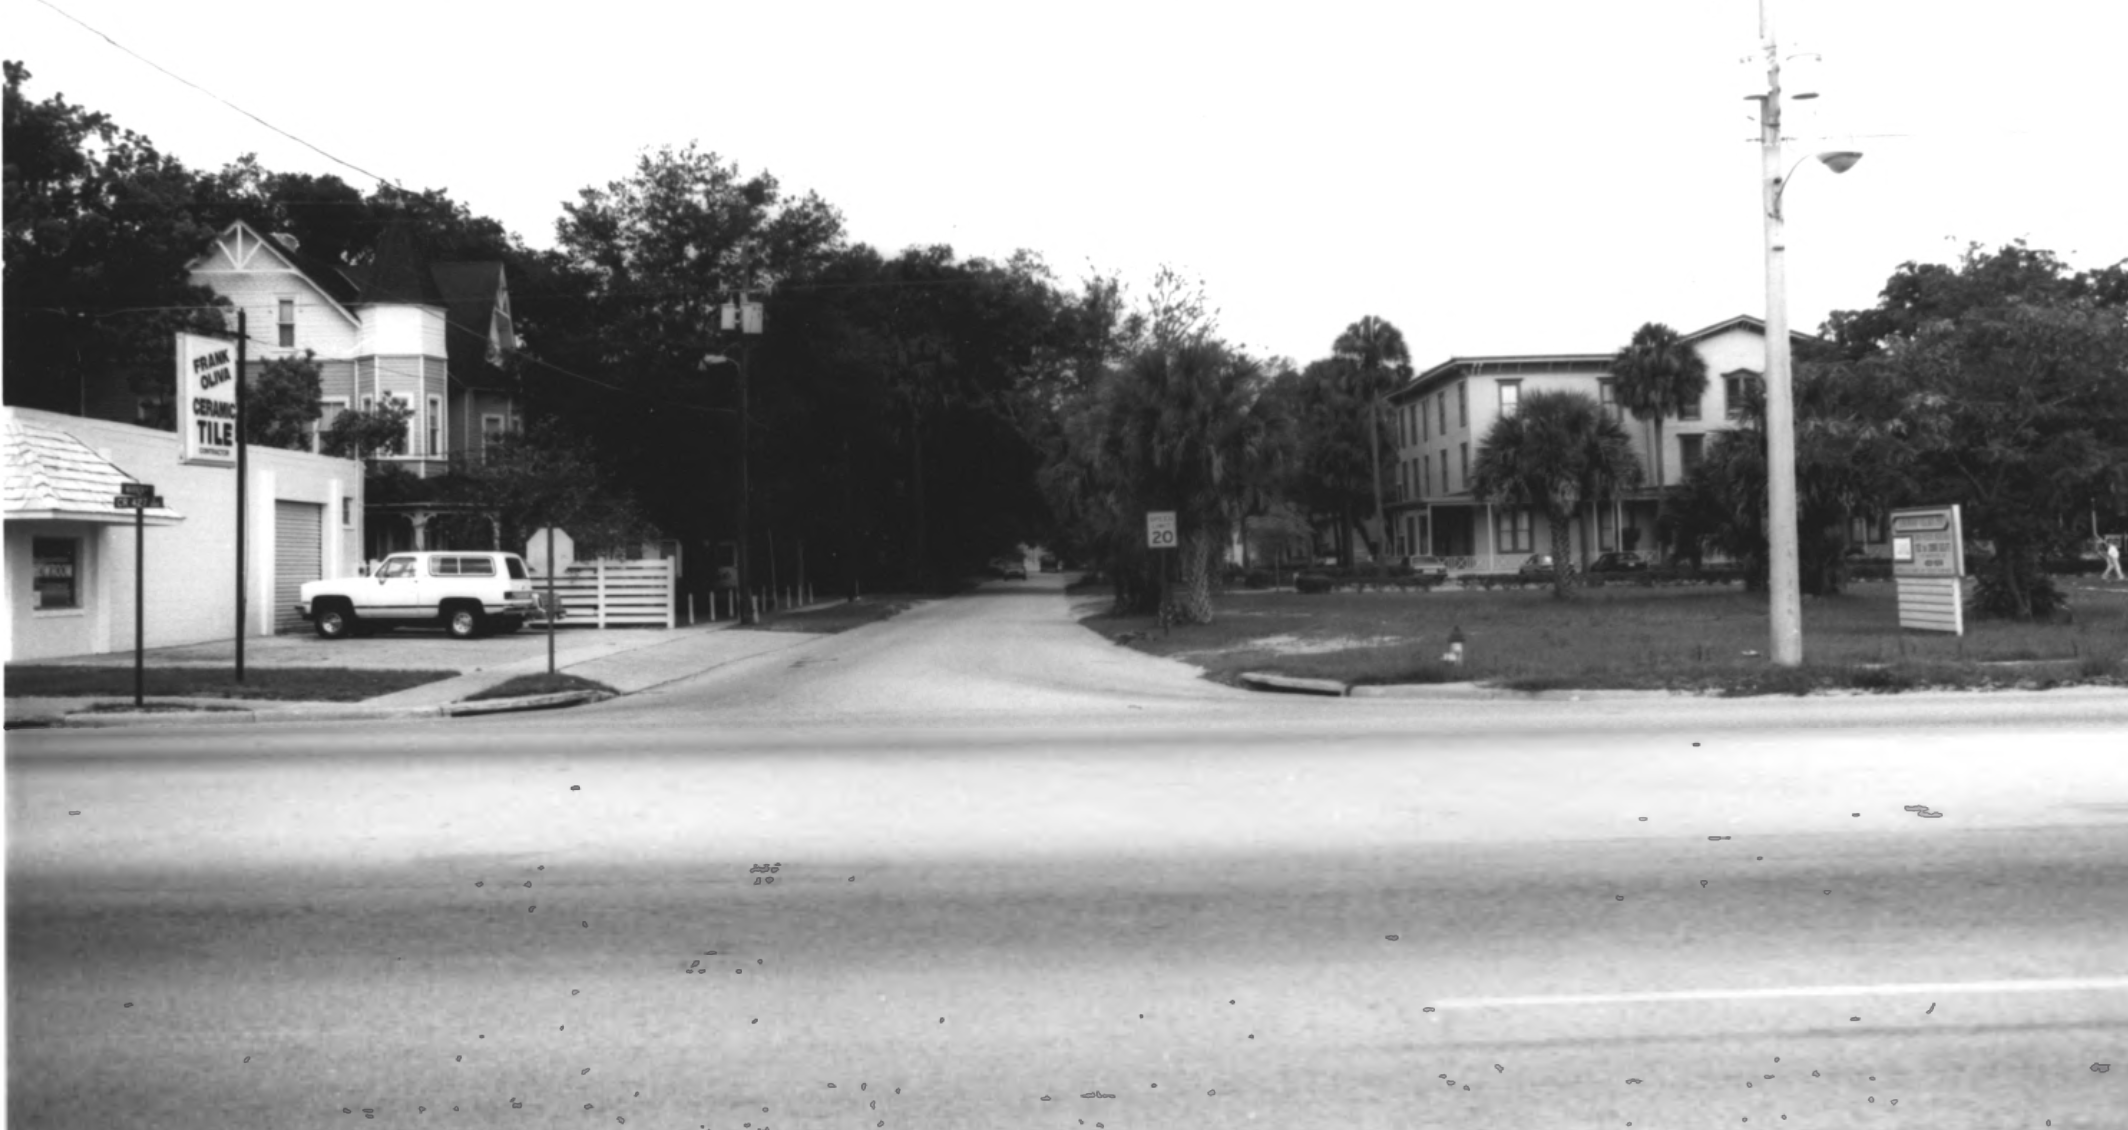 The Bradlee-Mac did not always border 427. Seen here looking across 427 west on Warren, the house is in the background here behind Frank Oliva Ceramic Tile, before the highway was expanded and that retailer was torn down. Photo from 1990 with the Longwood Historic District filing.